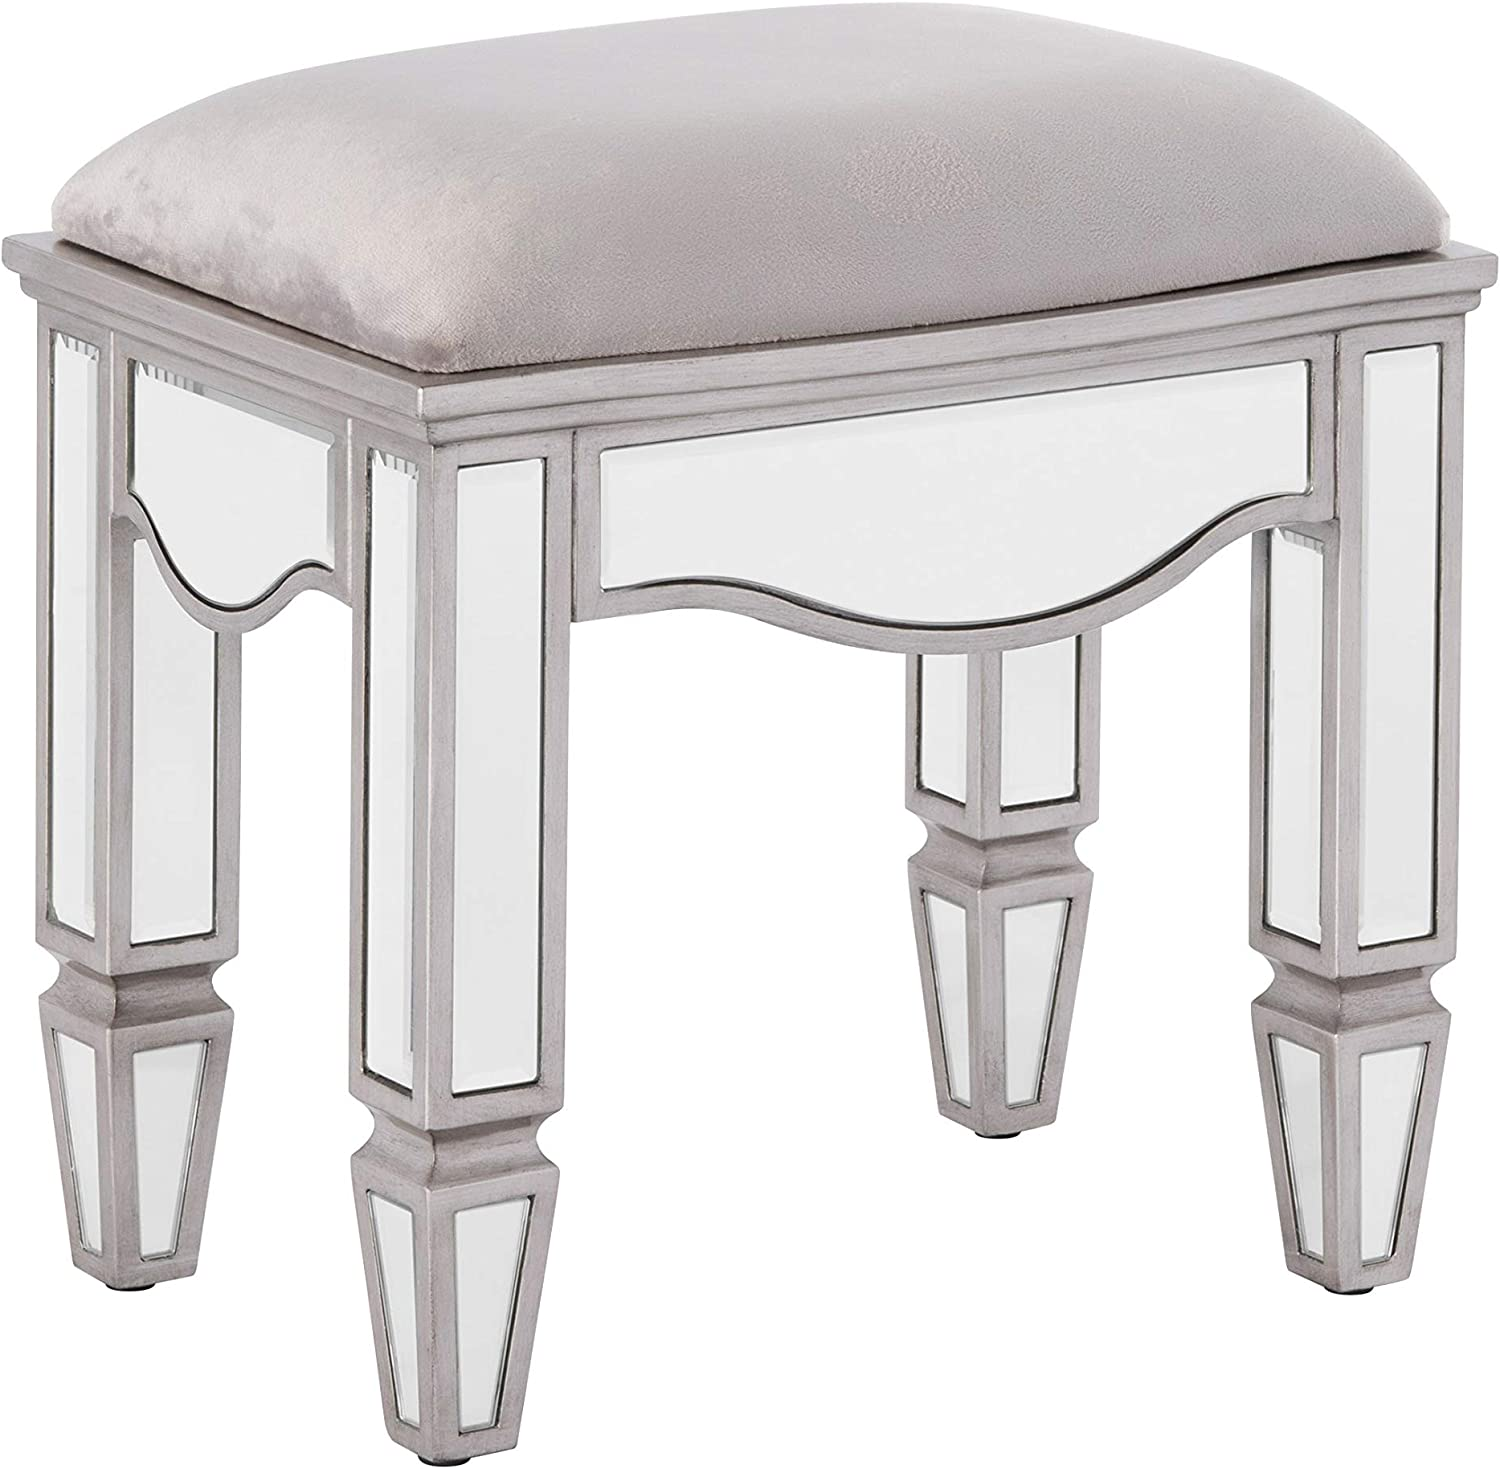 Depth 32 cm Height 45.5 cm Mirrored Bedroom Furniture Happy Beds Elysee Silver Dressing Table Stool Width 45 cm